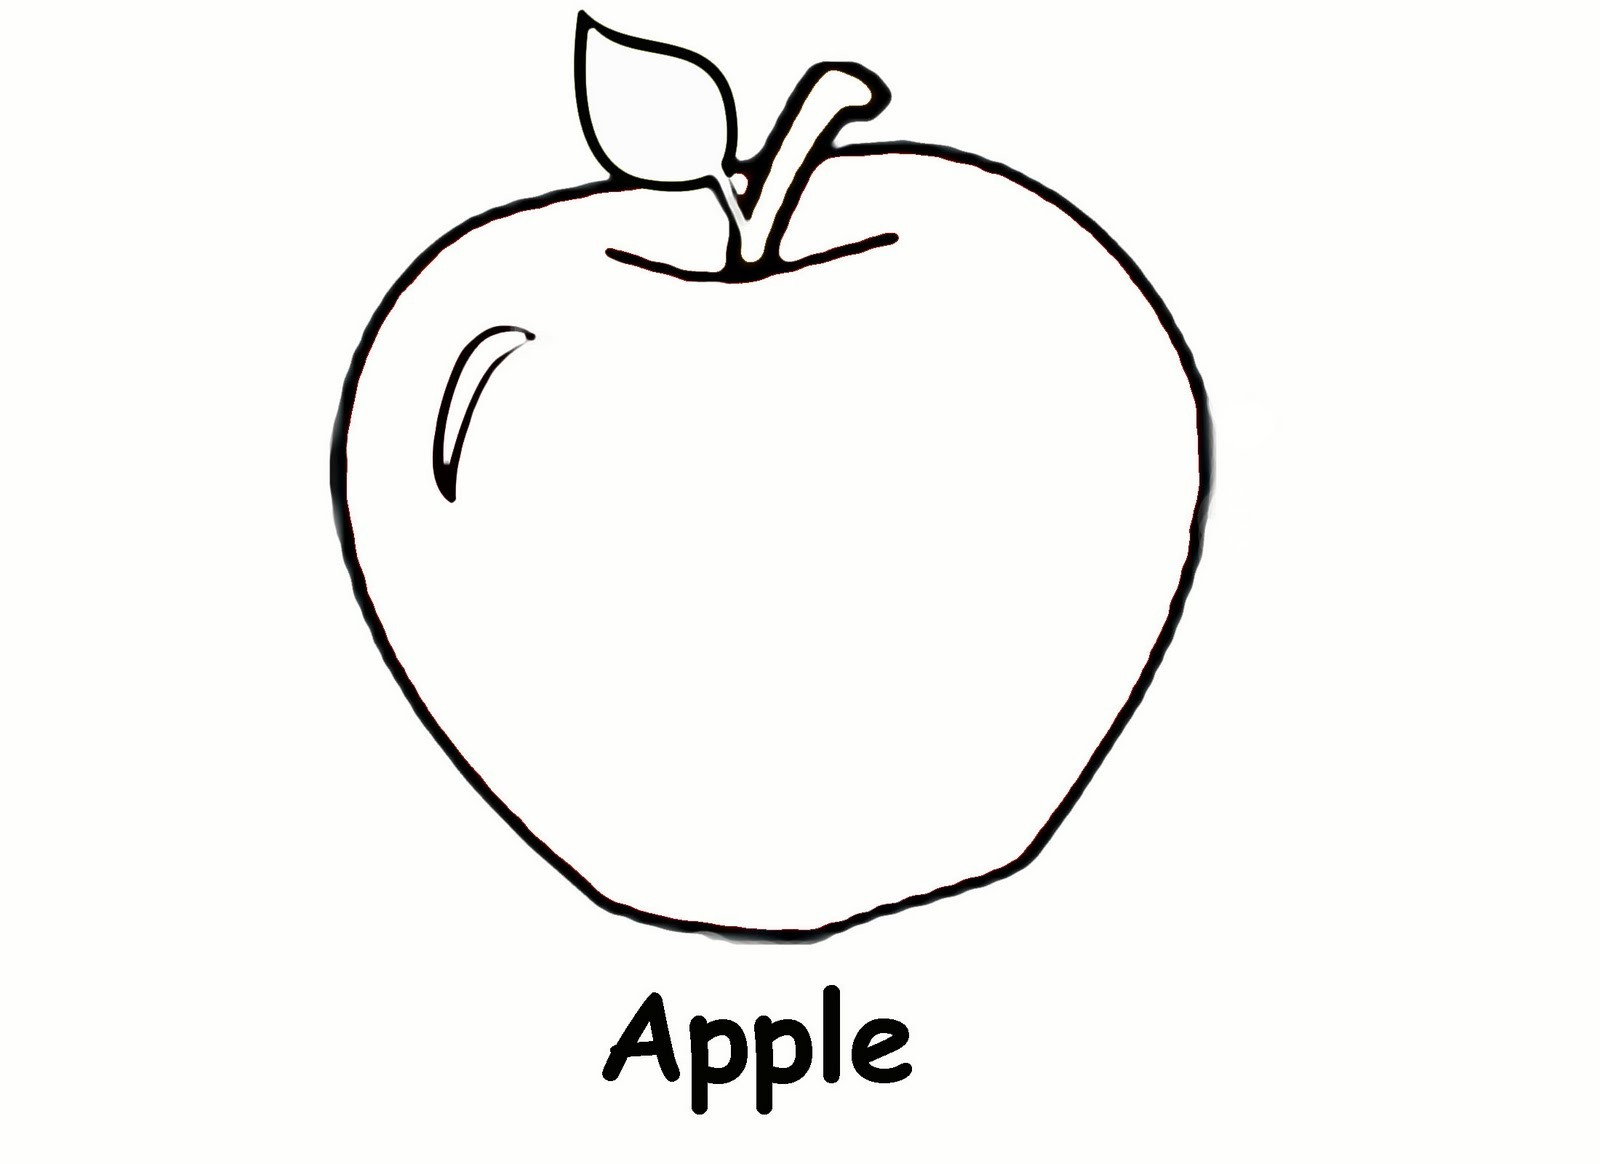 Coloring pages for preschoolers only coloring pages for Preschool coloring pages